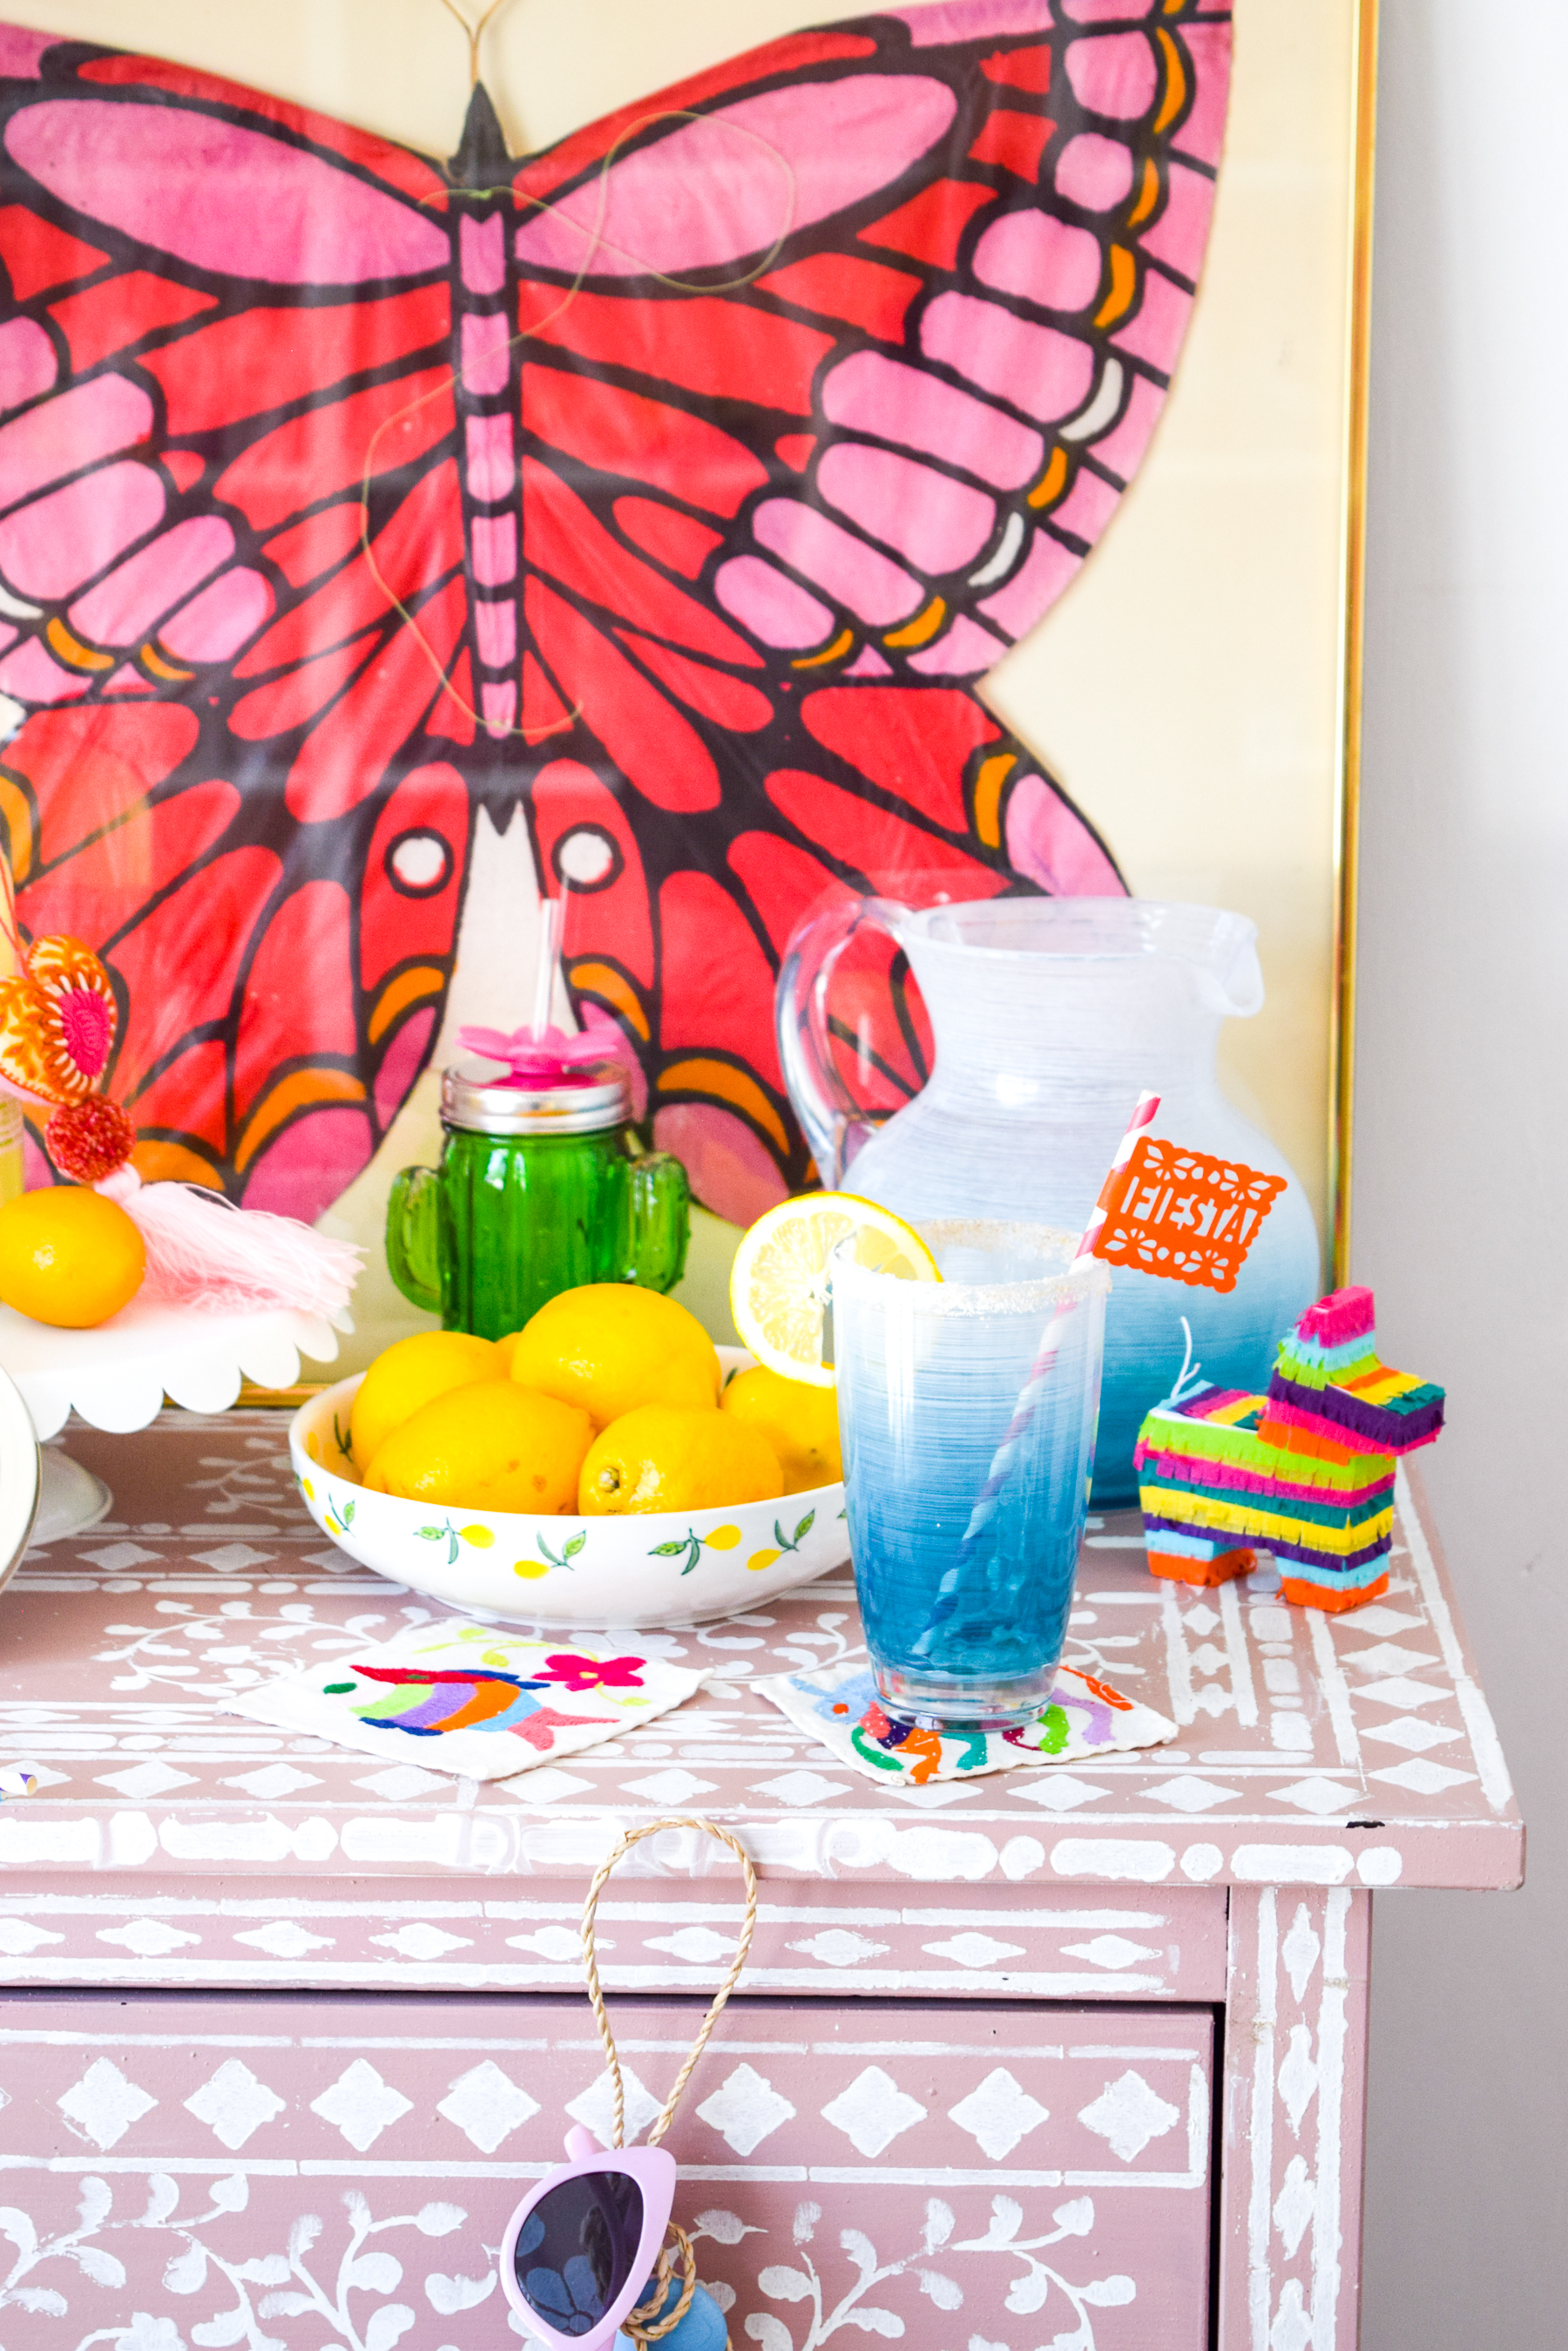 4 Ways To Style Your Bar For Spring - and they all involve Stirrings' line of cocktail mixes, rimmers, and bar essentials! Come see how they fit for every occasion between now and Summer, including Easter & Cinco de Mayo.